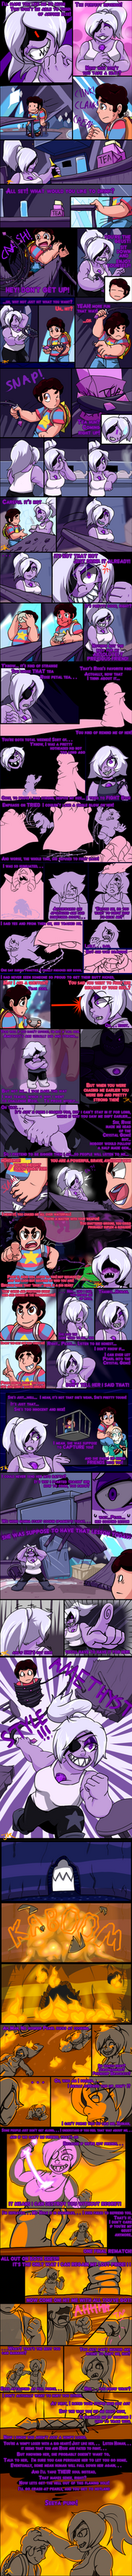 Steven's Tale-Waterfall P12 by Arteses-Canvas